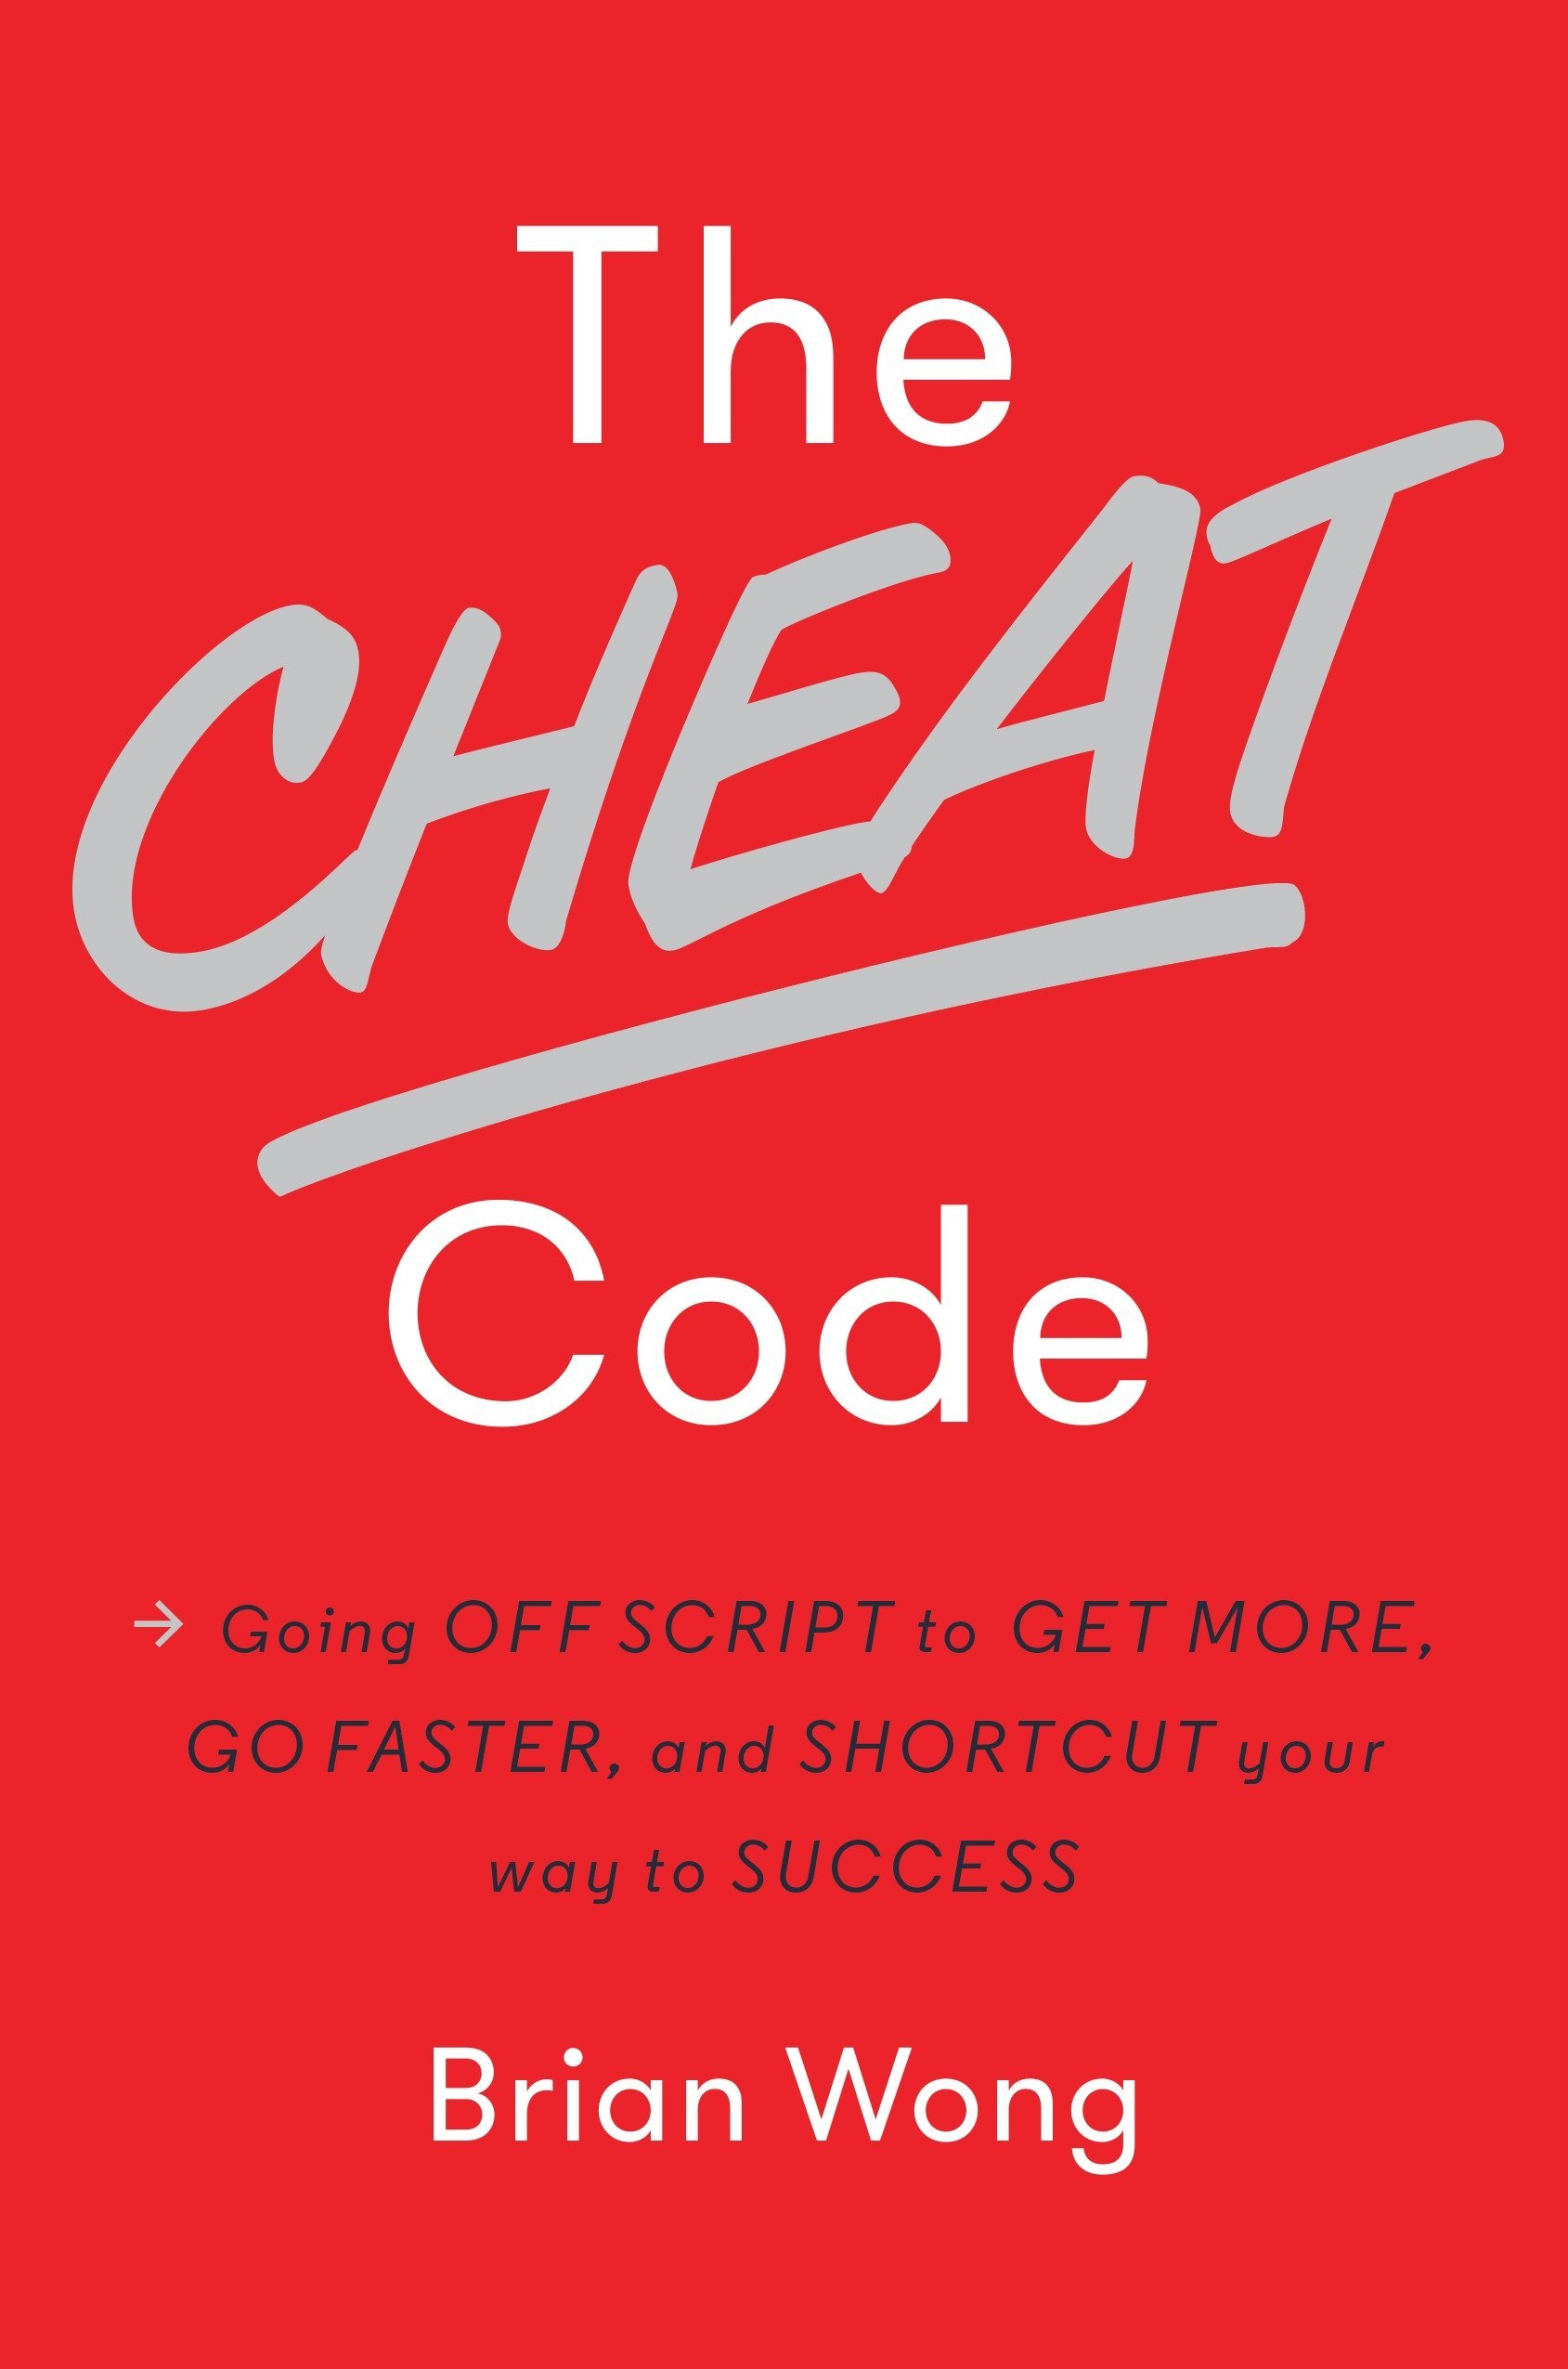 The Cheat Code Going Off Script To Get More Go Faster And Shortcut Your Way To Success Wong Brian 9781101904961 Amazon Com Books